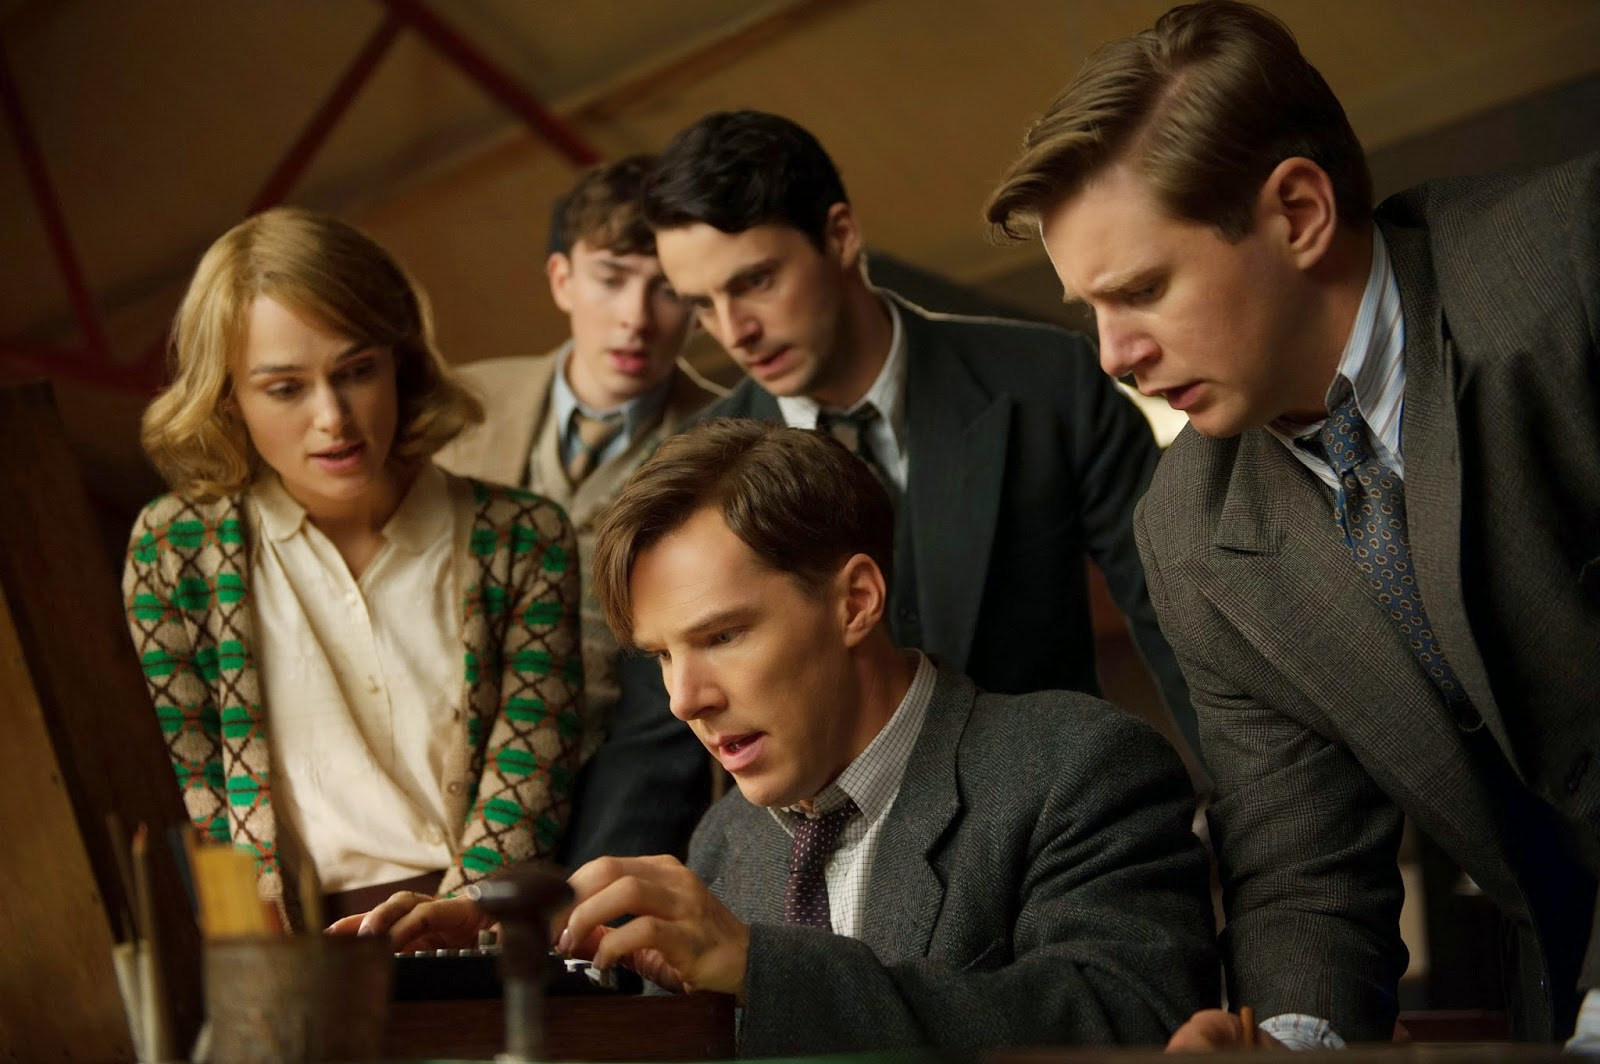 Cast van The Imitation Game op een rij: Keira Knightley, Matthew Goode & Benedict Cumberbatch